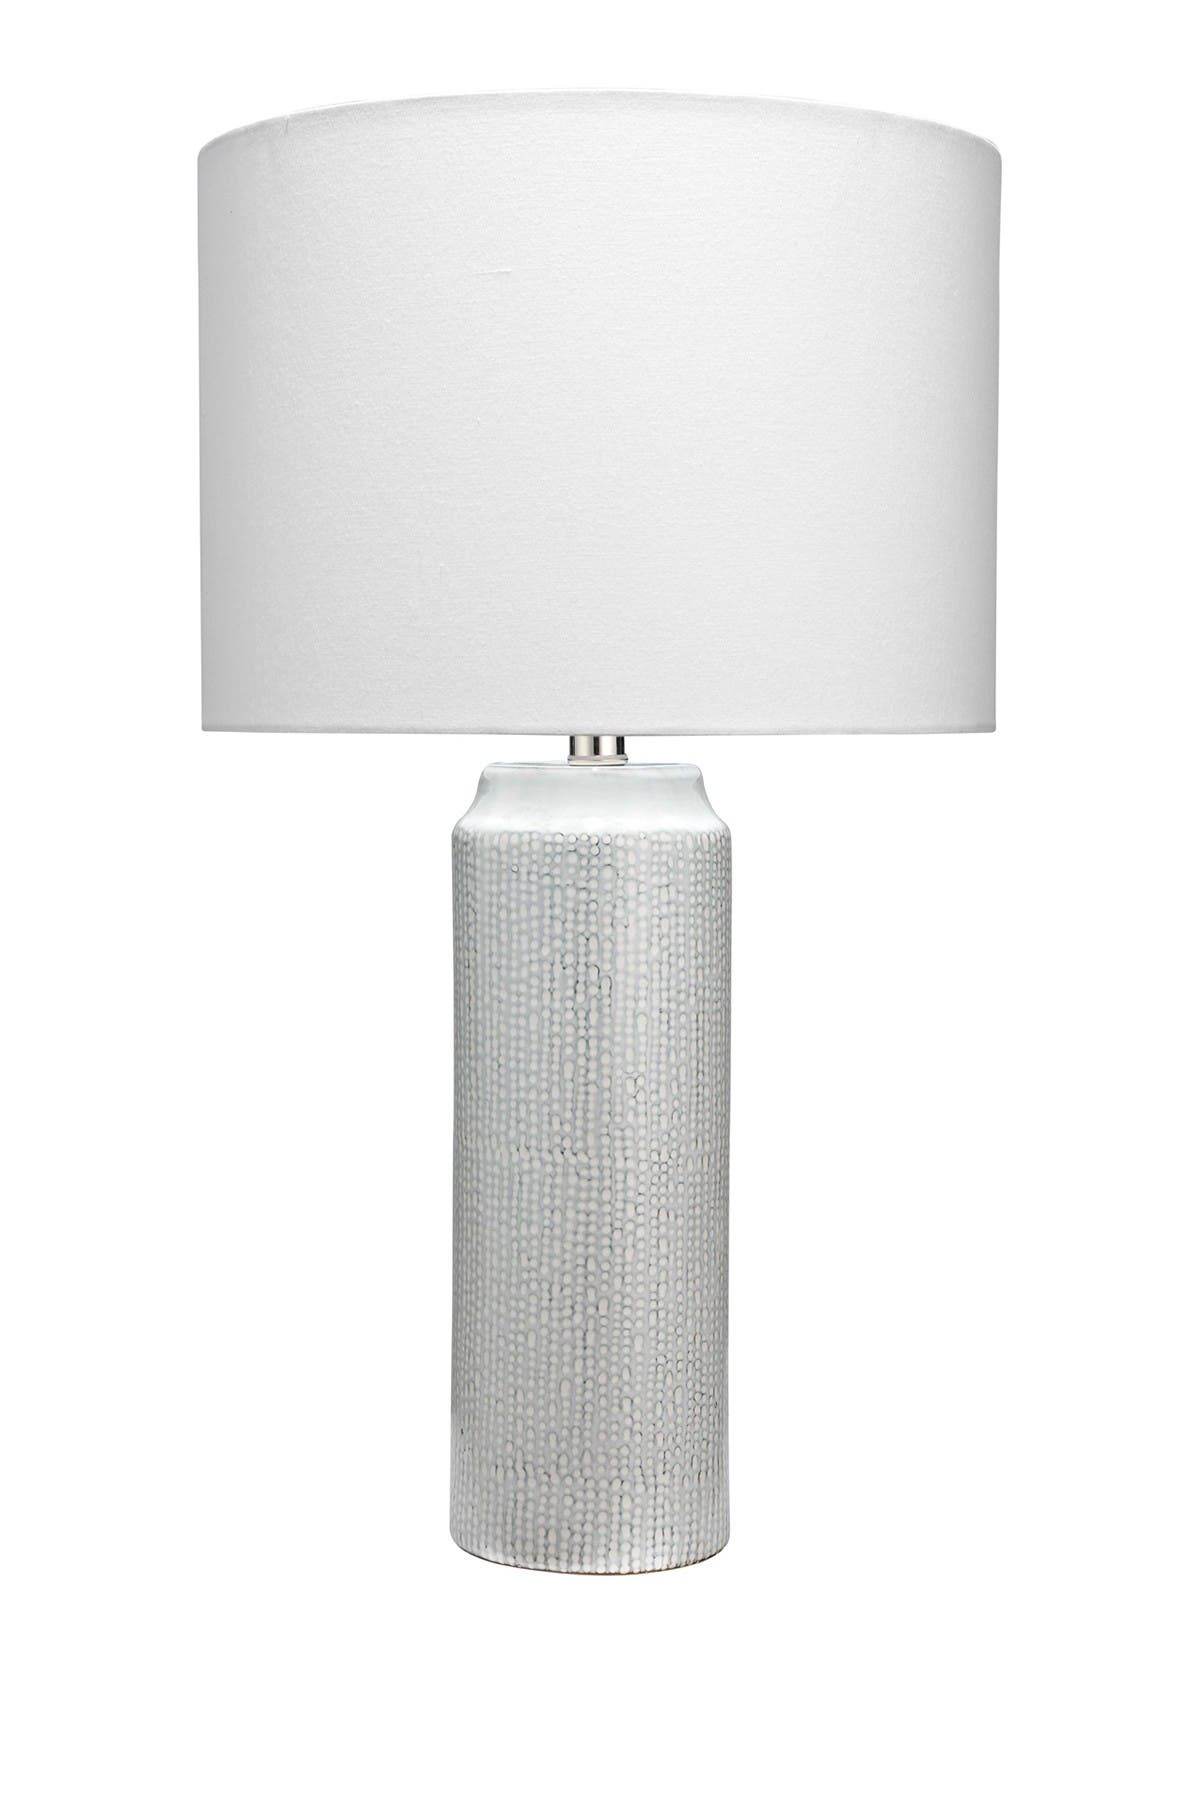 Jamie Young Lighting & lamps BELLA TABLE LAMP IN LIGHT BLUE PATTERNED CERAMIC WITH DRUM SHADE IN WHITE LINEN